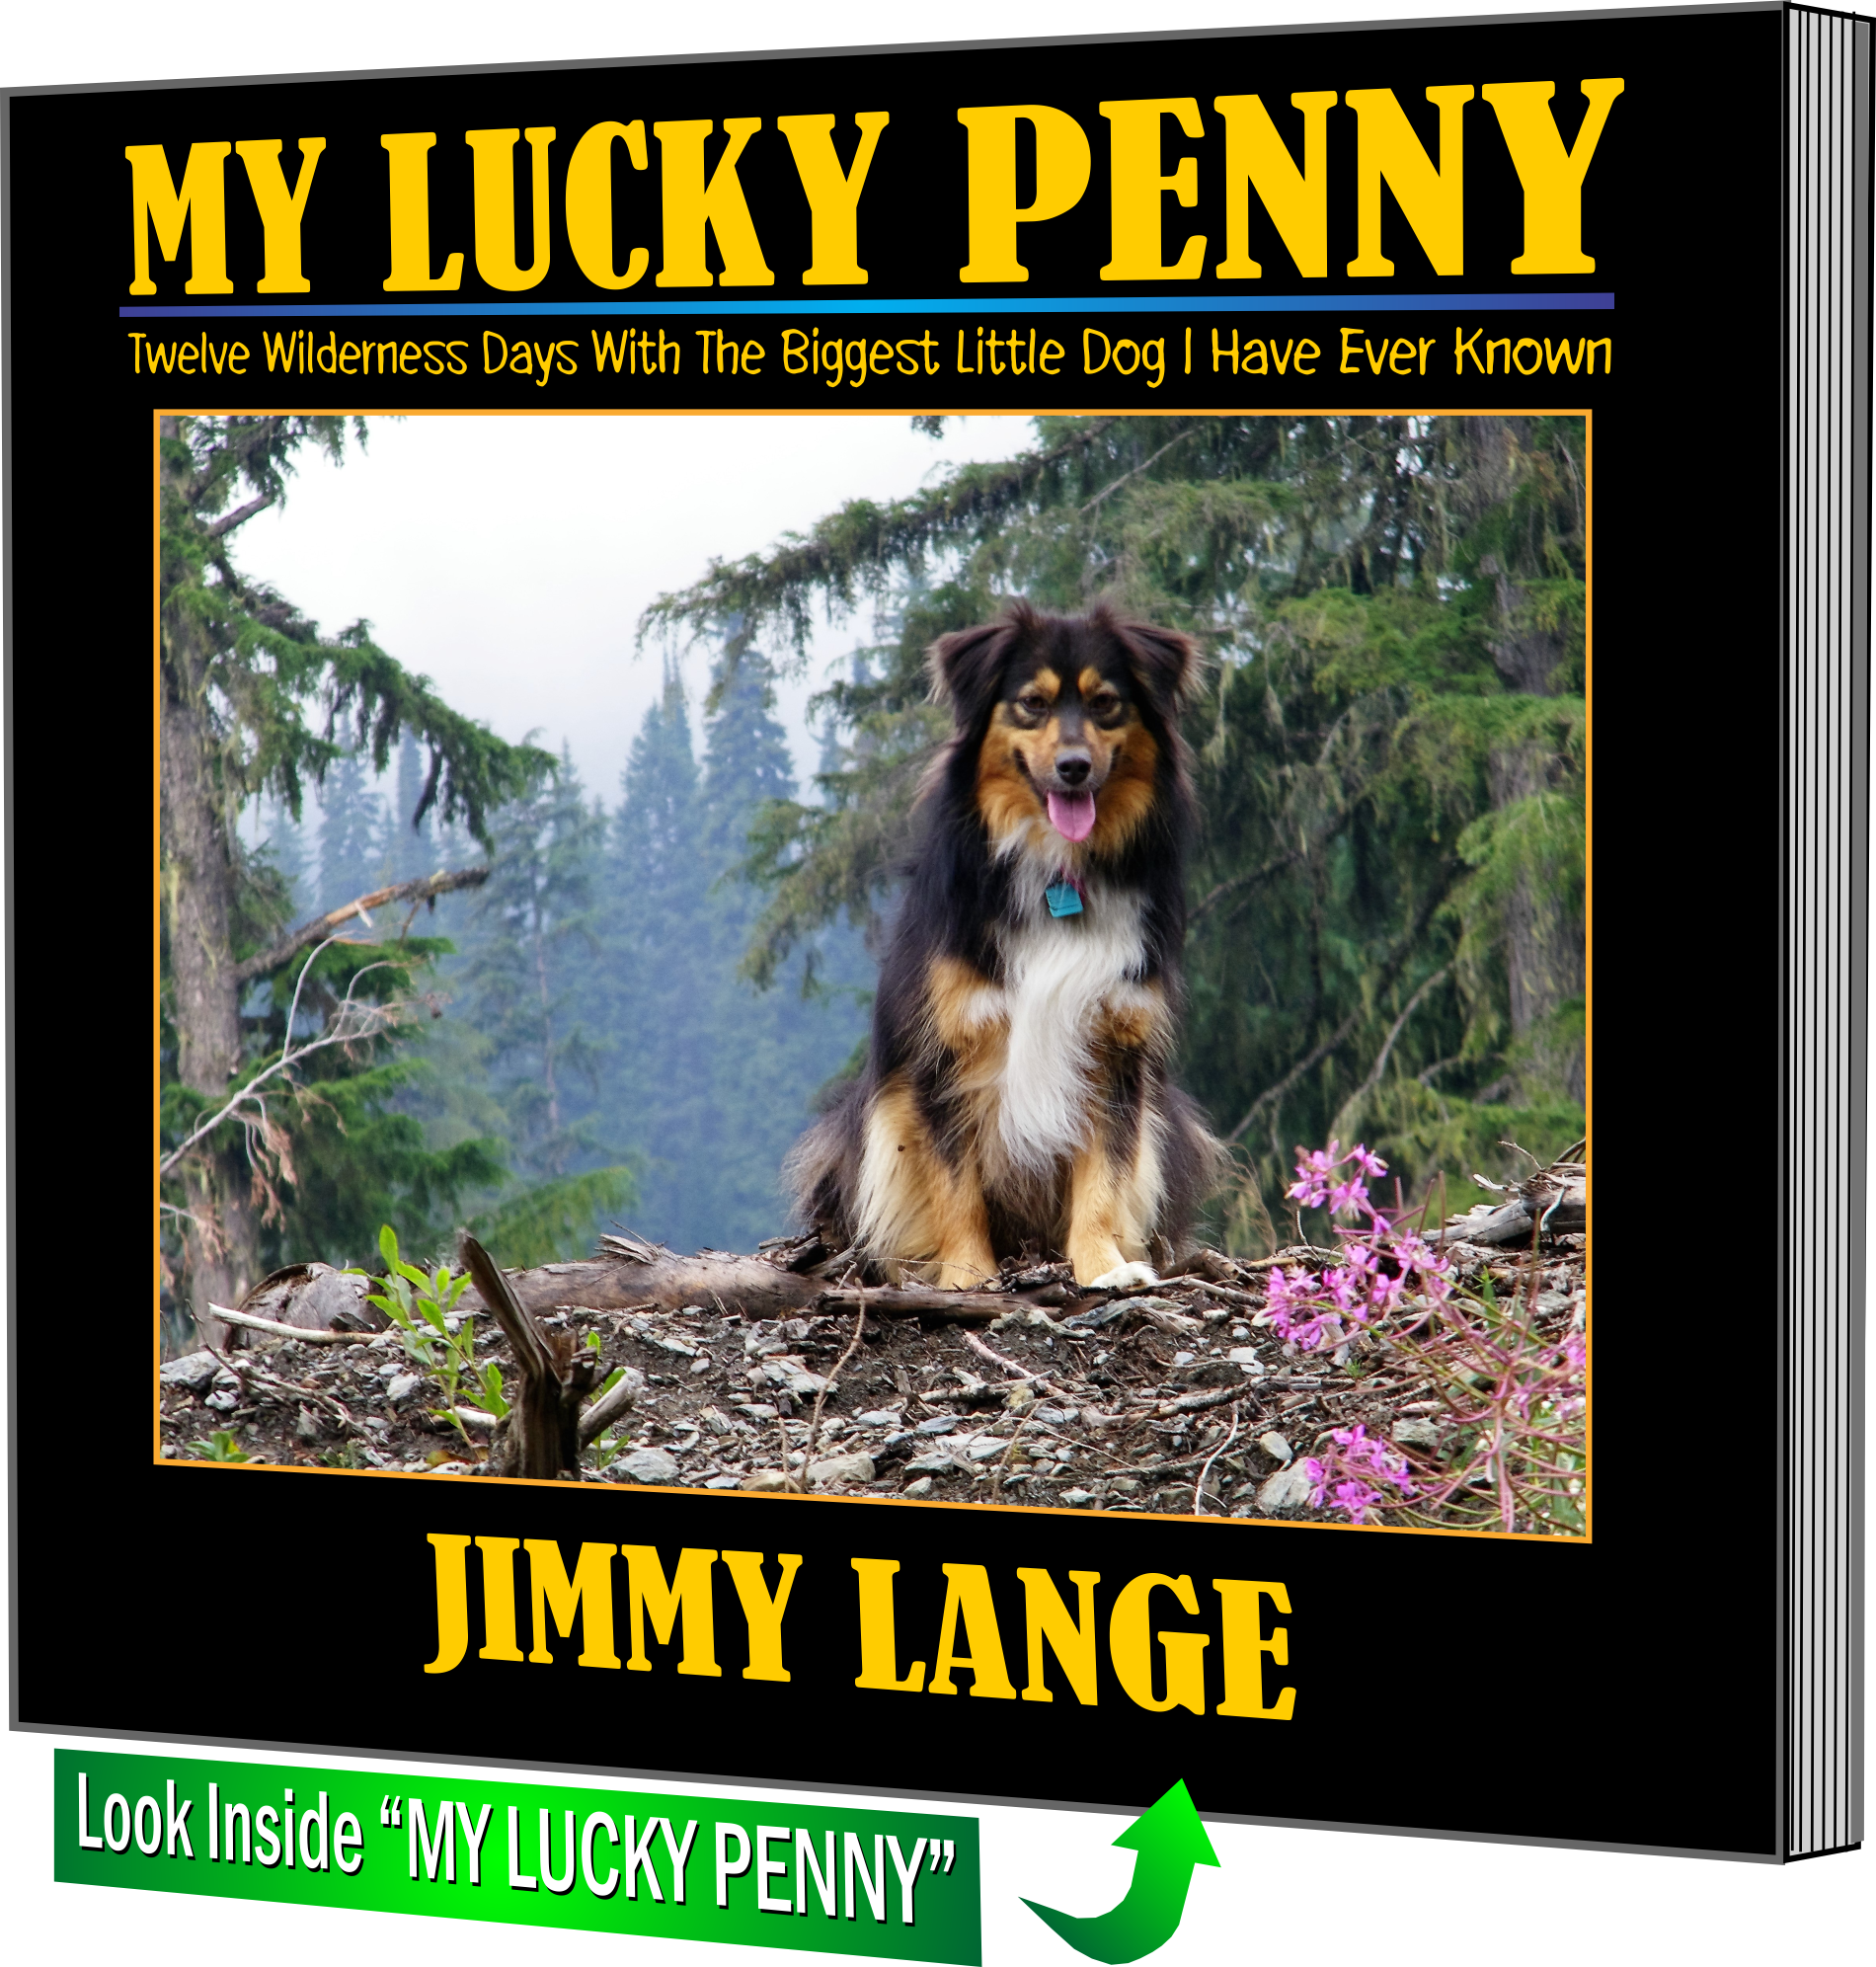 Image of book cover - My Lucky Penny by Jimmy Lange